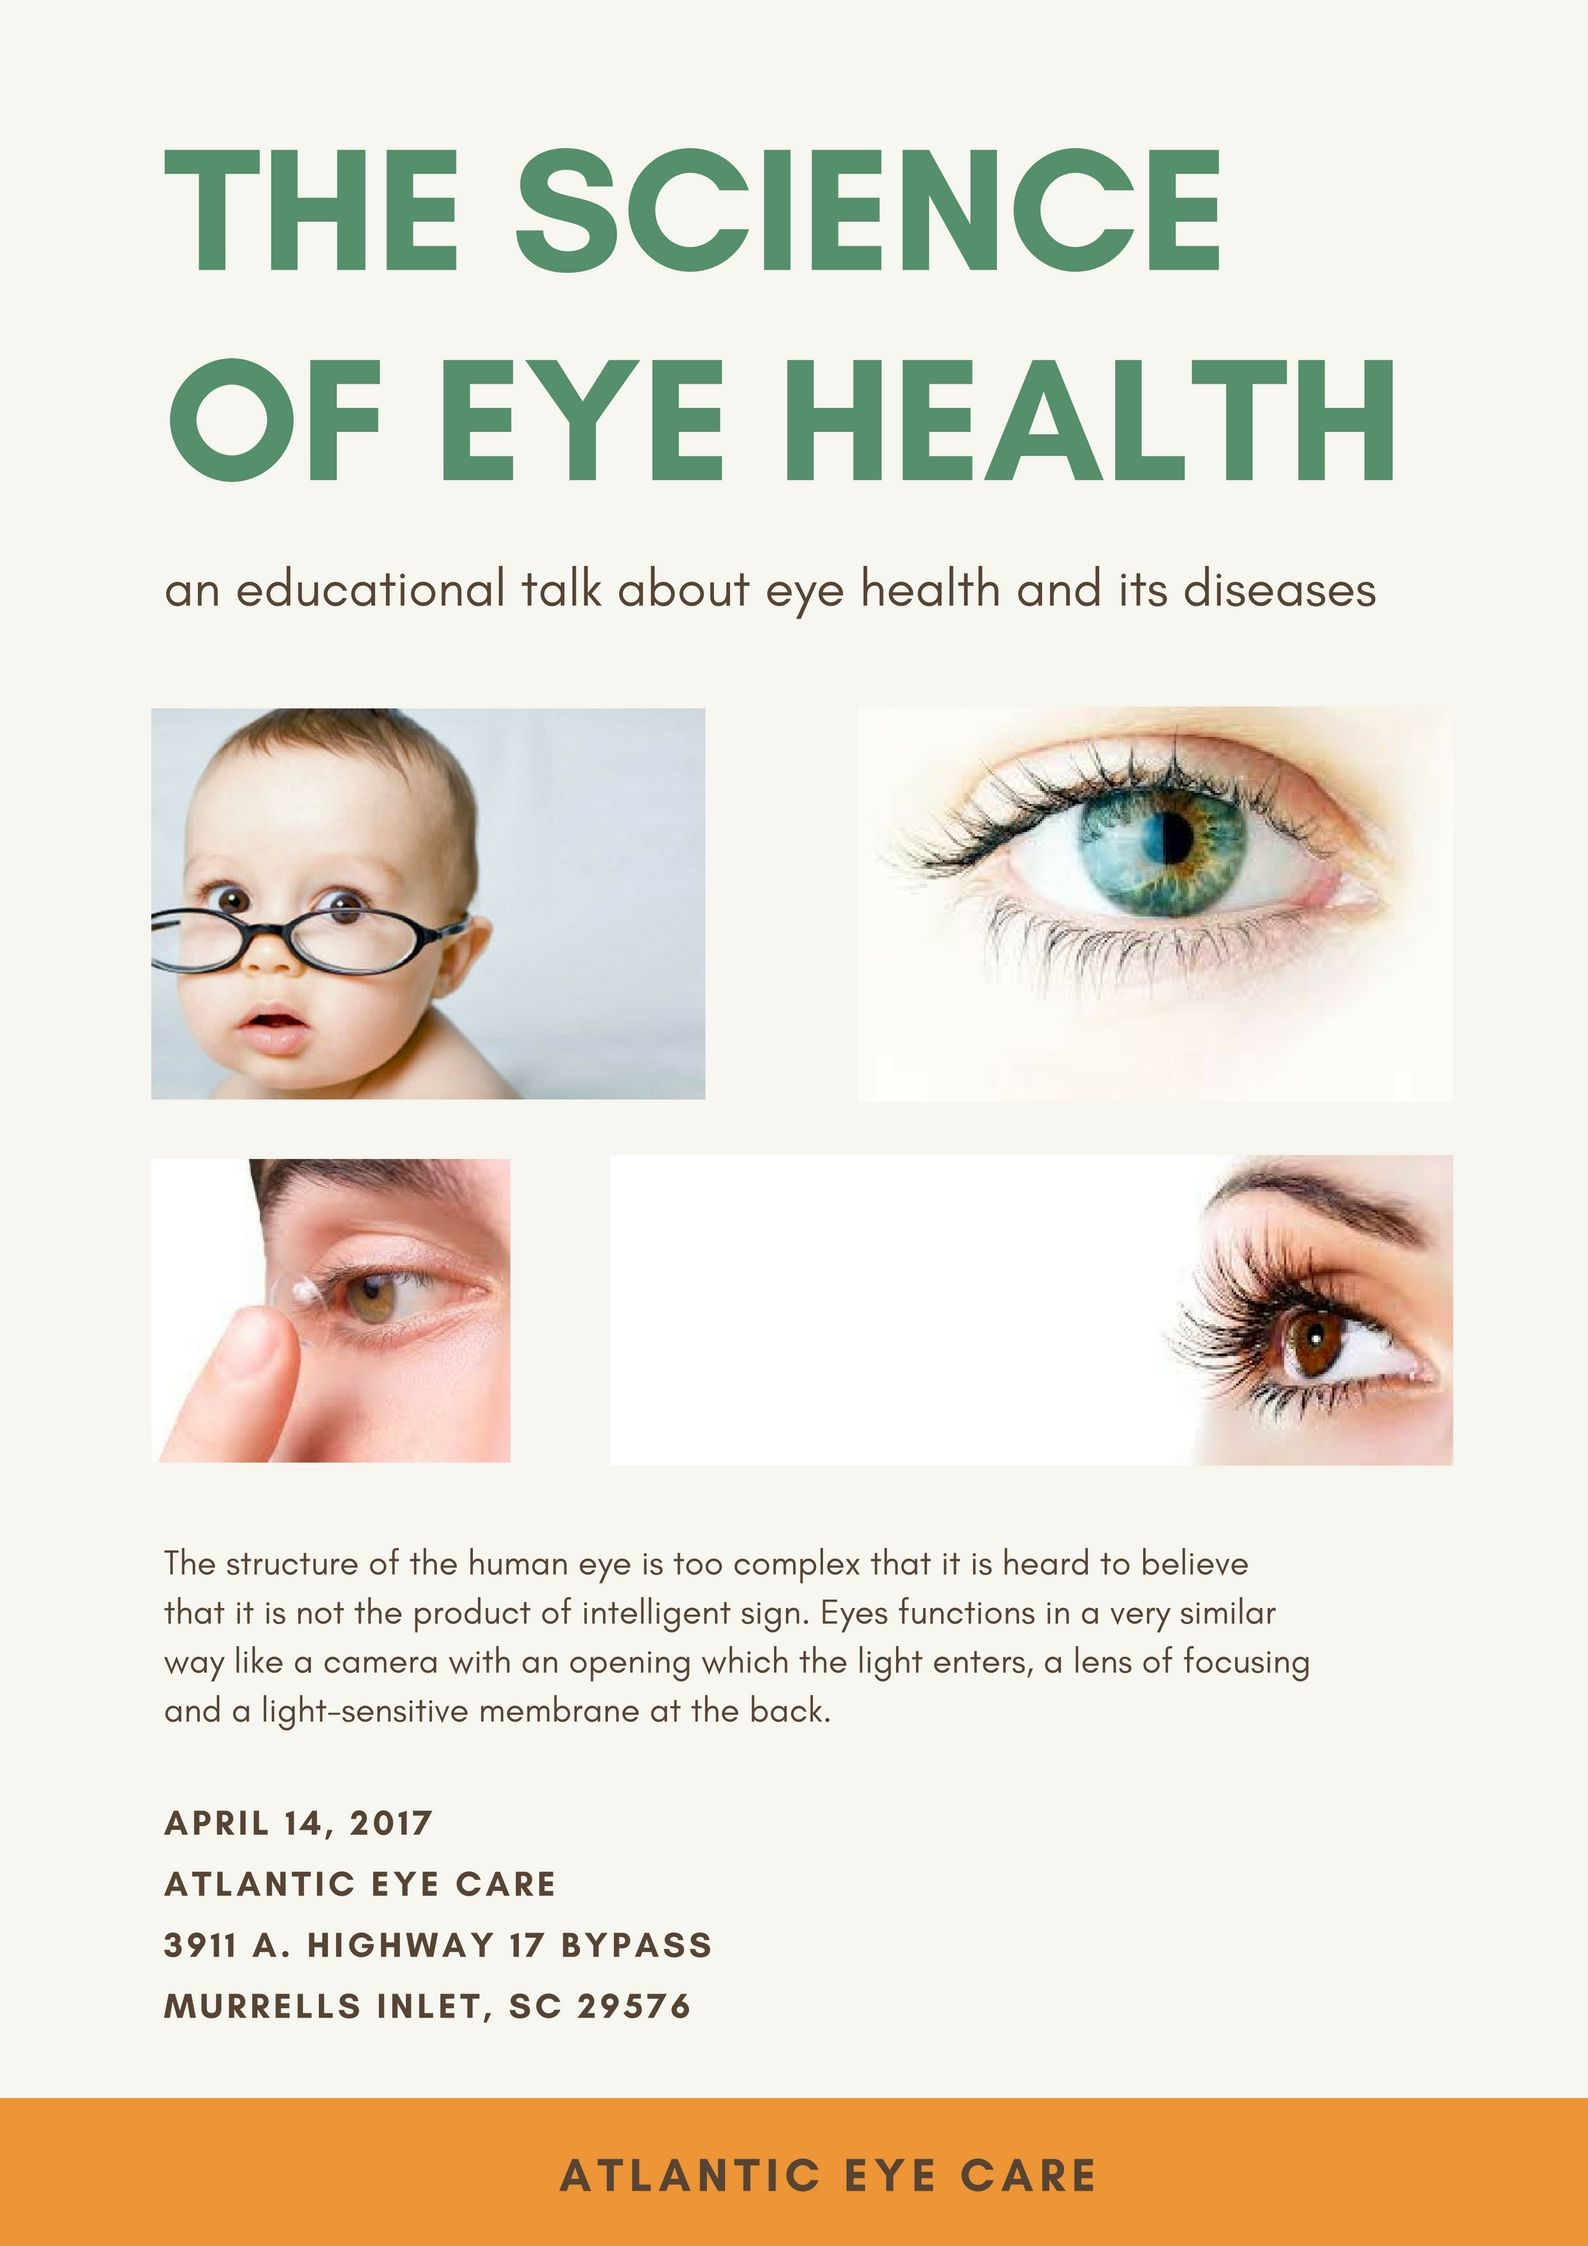 643e3c5ce66 eyes are the most precious part of human body. Know more about eye health  and